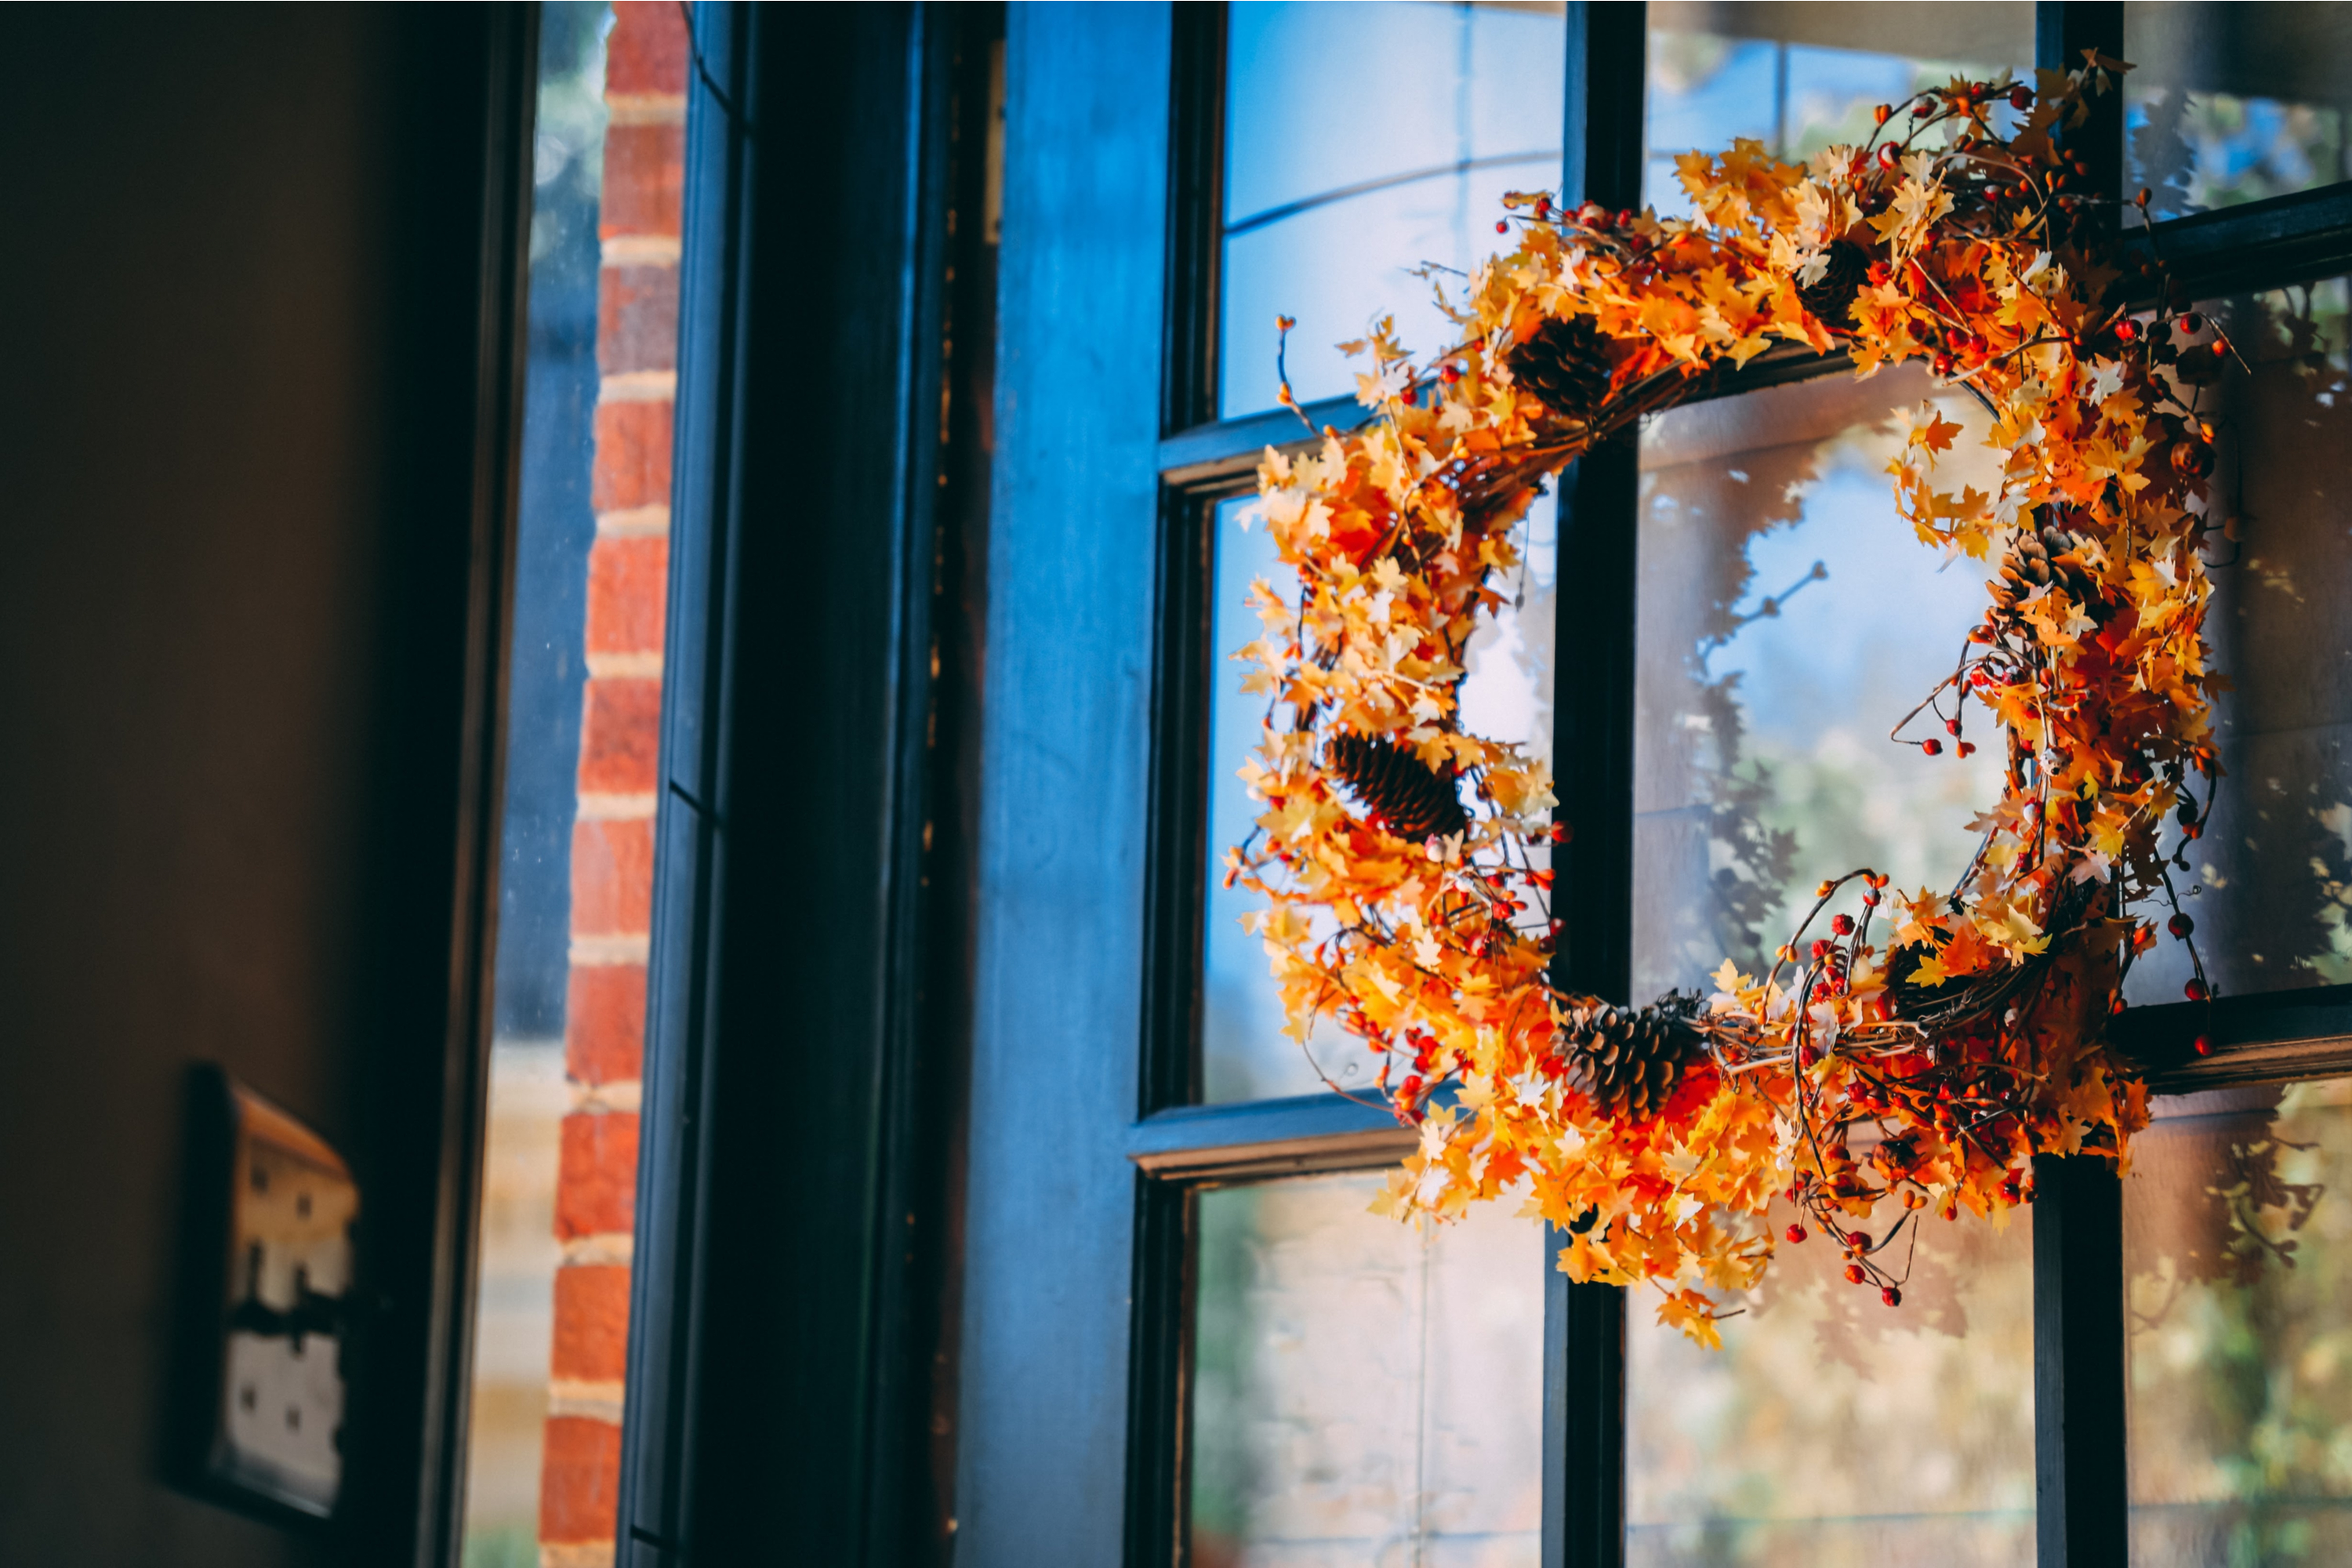 window decor | fall decor | fall window decor | decor | fall | window | fall window | home decor | fall home decor